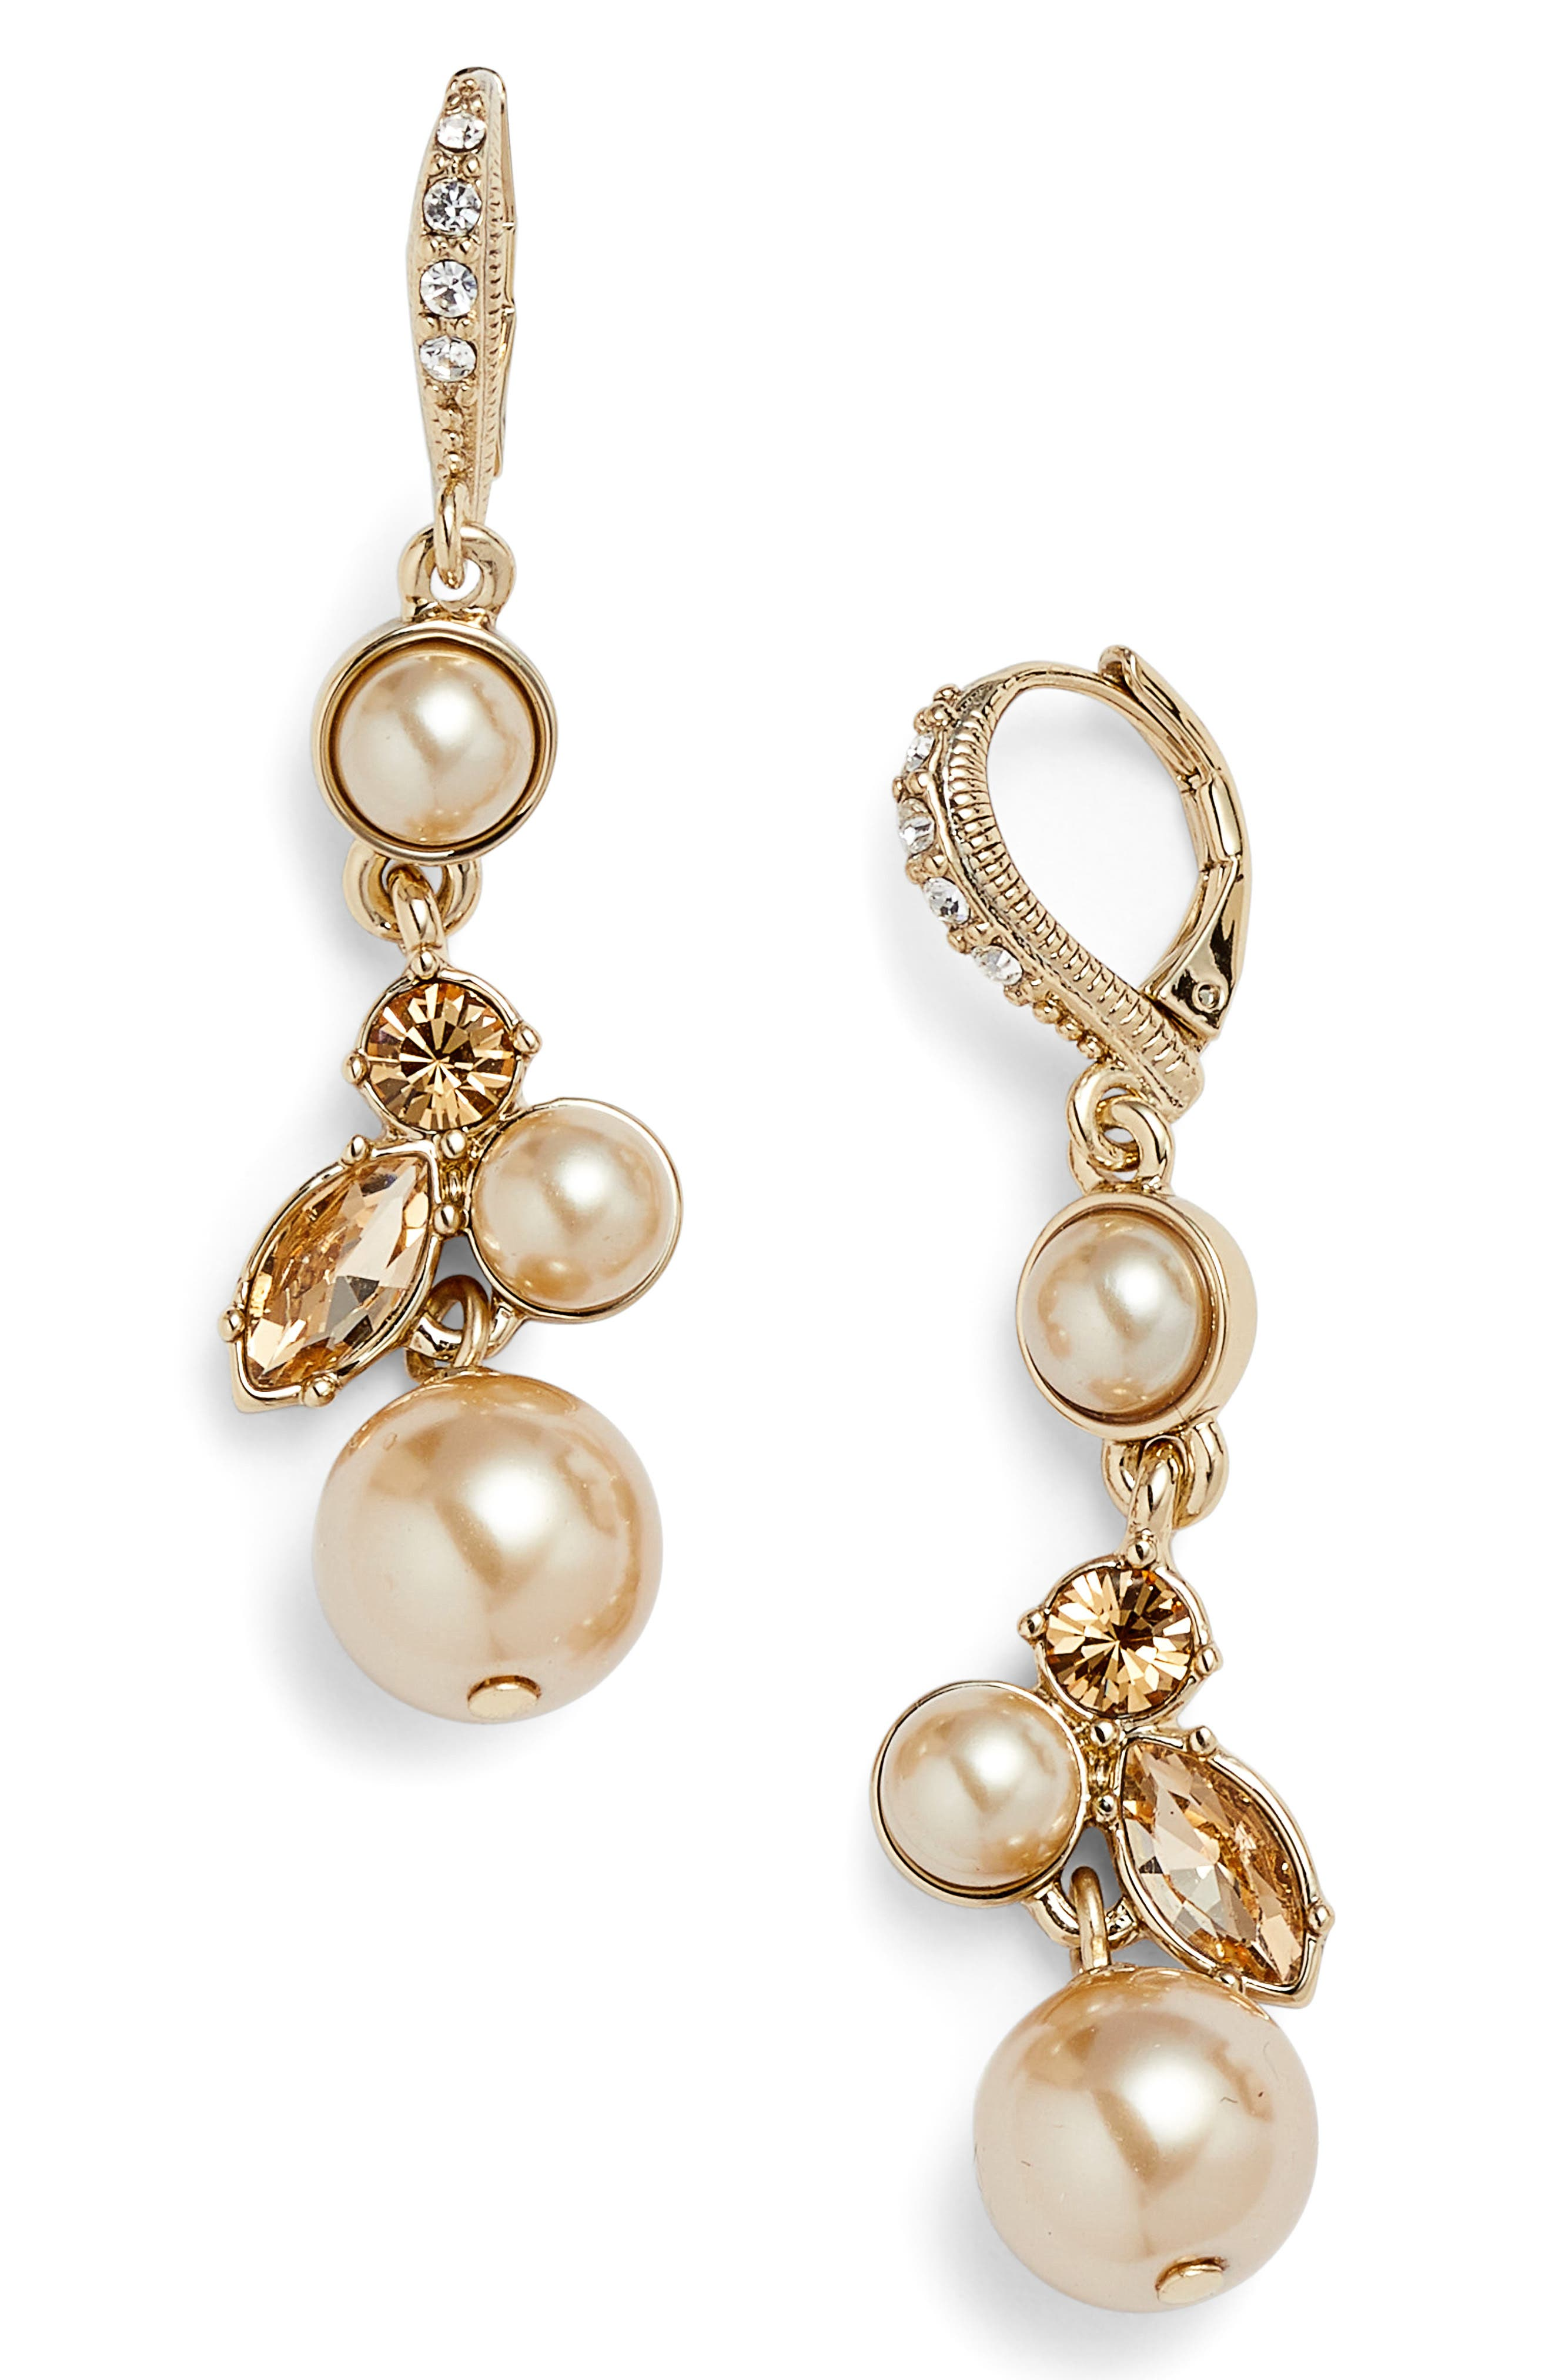 Givenchy Imitation Pearl Earrings